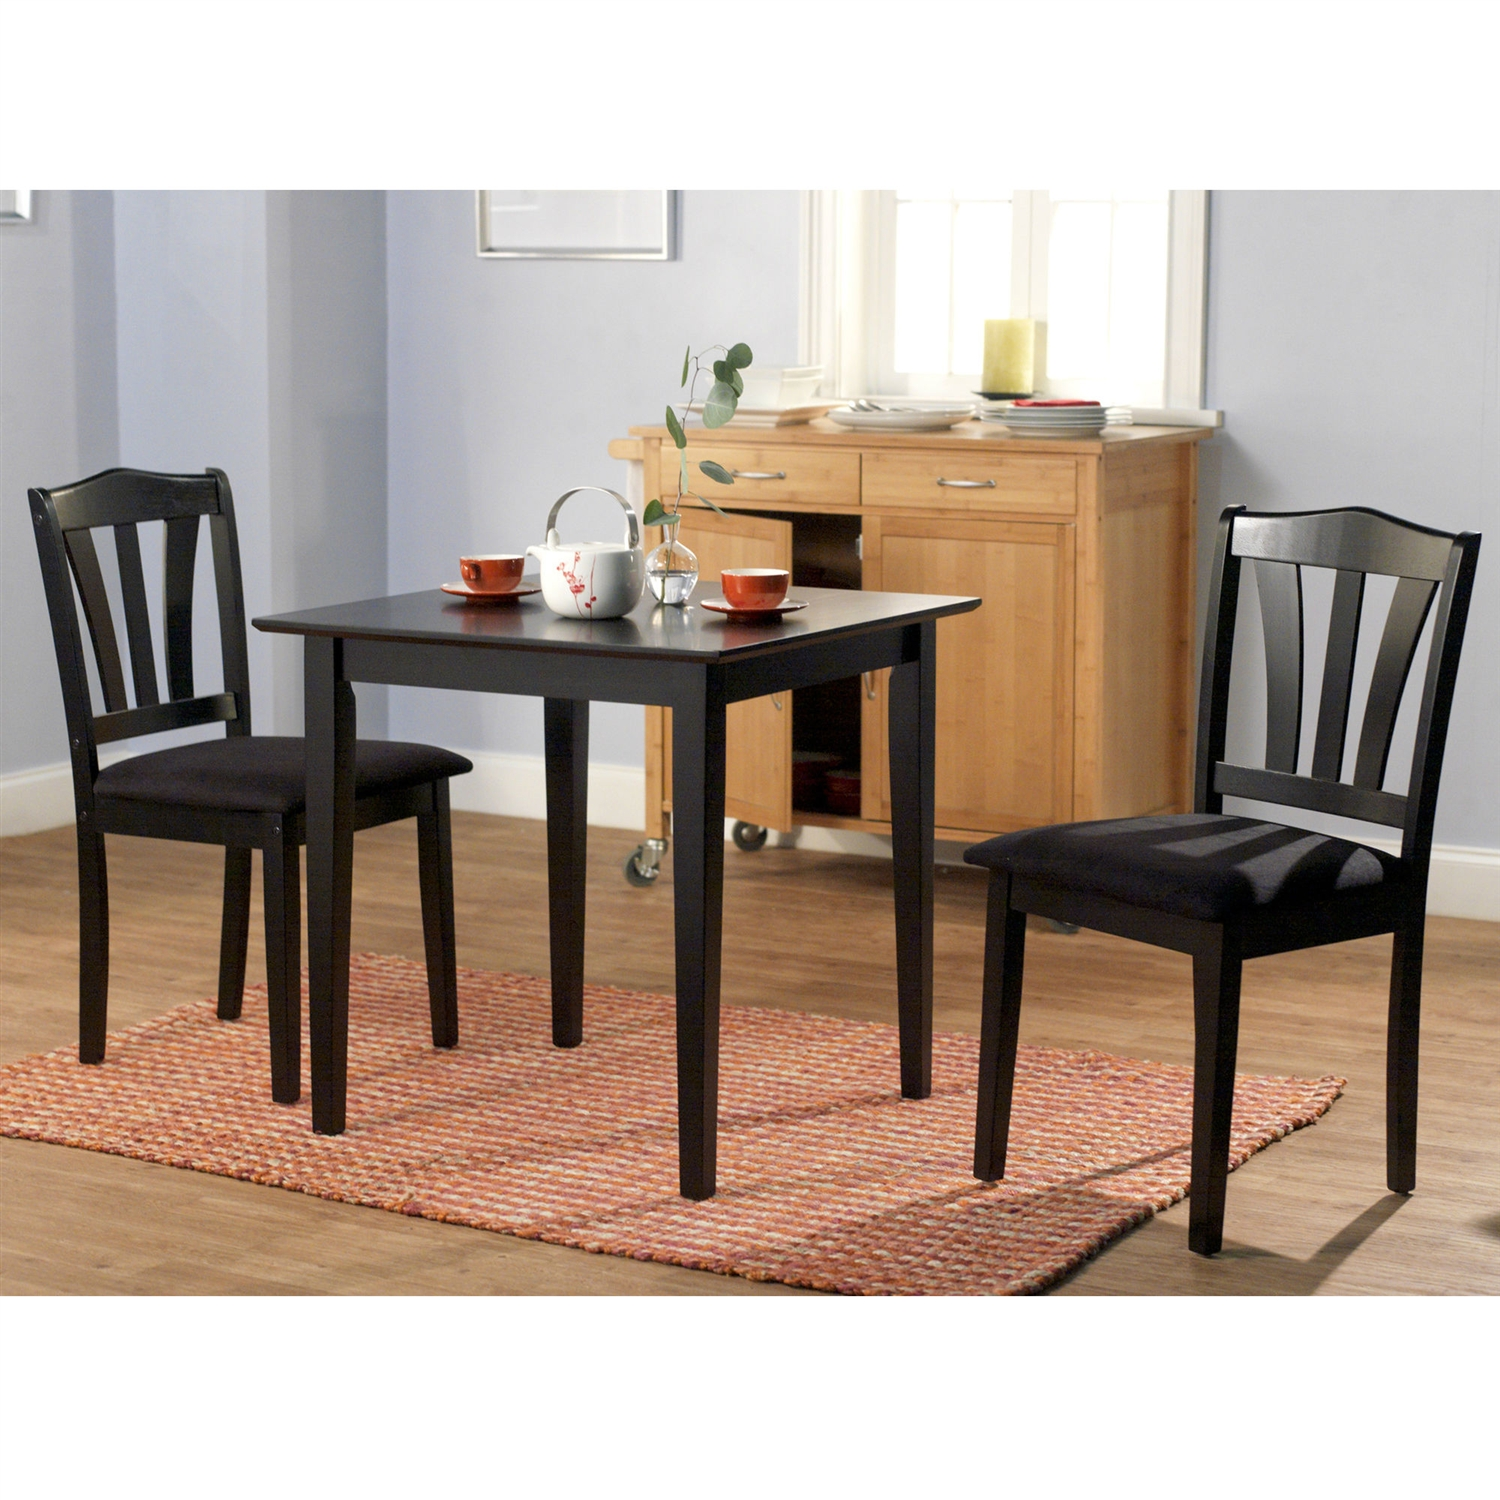 3-Piece Wood Dining Set With Square Table And 2 Chairs In